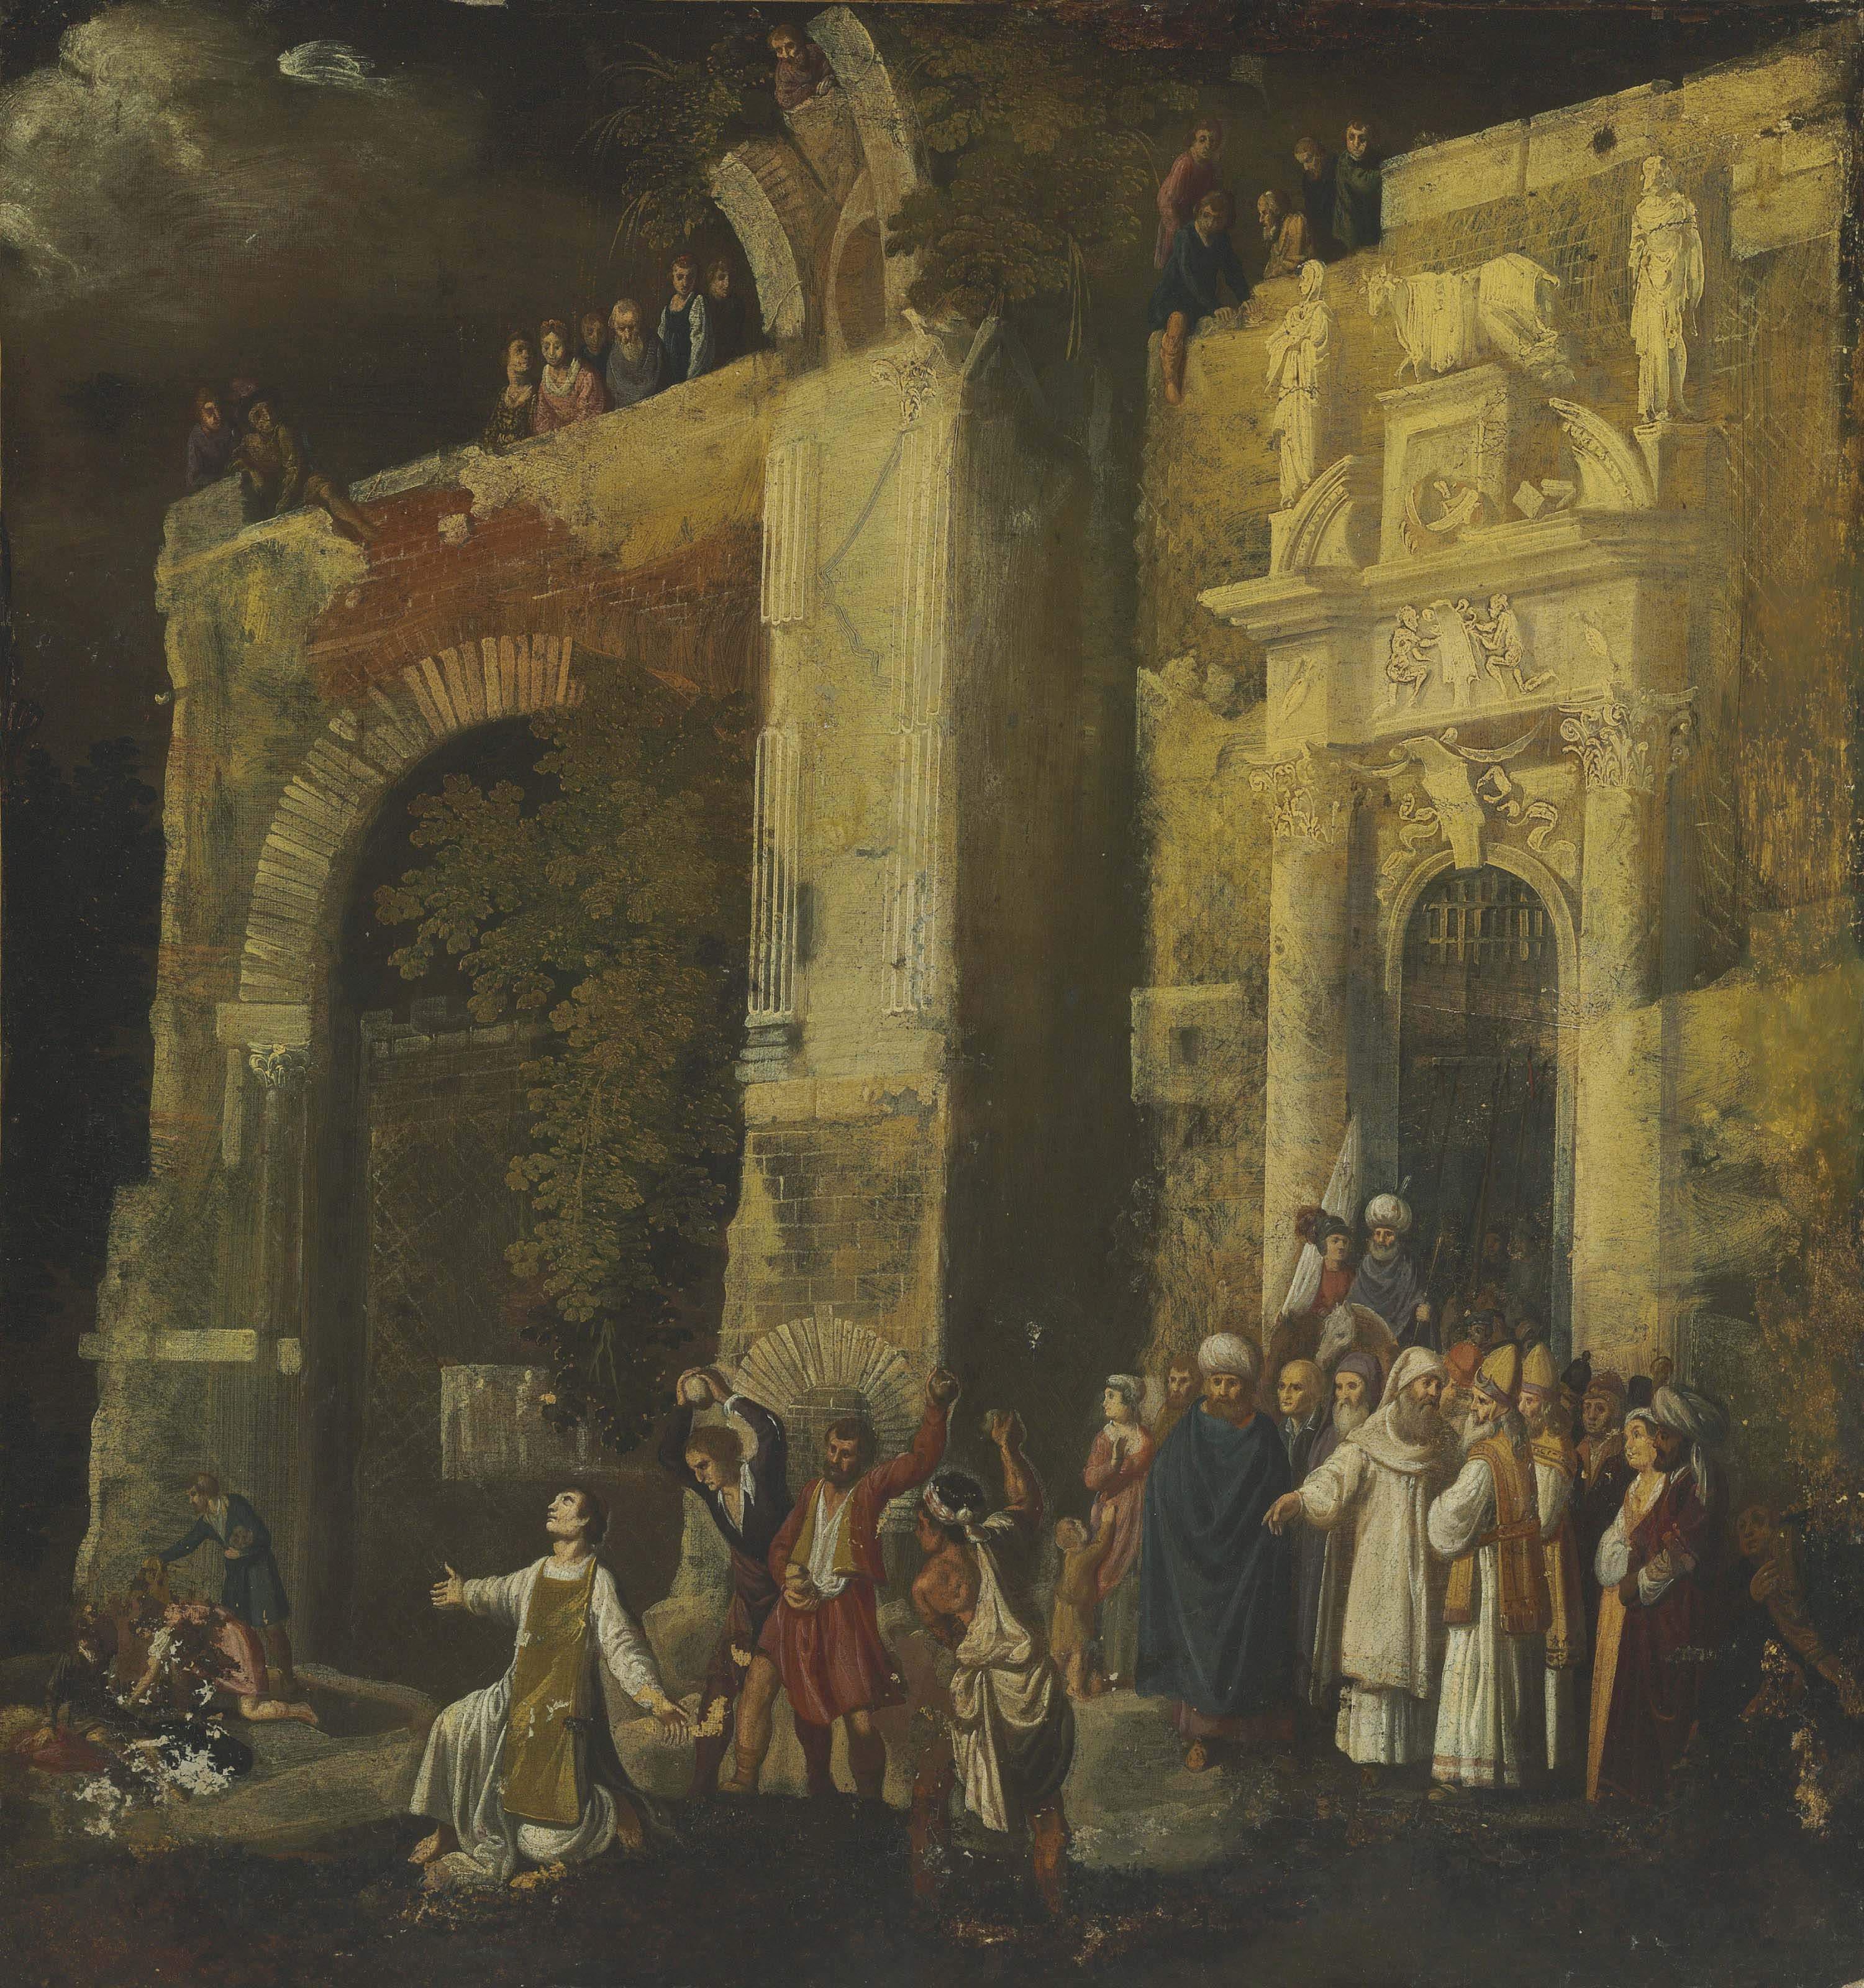 The Stoning of Saint Stephen, a Classical architectural capriccio beyond